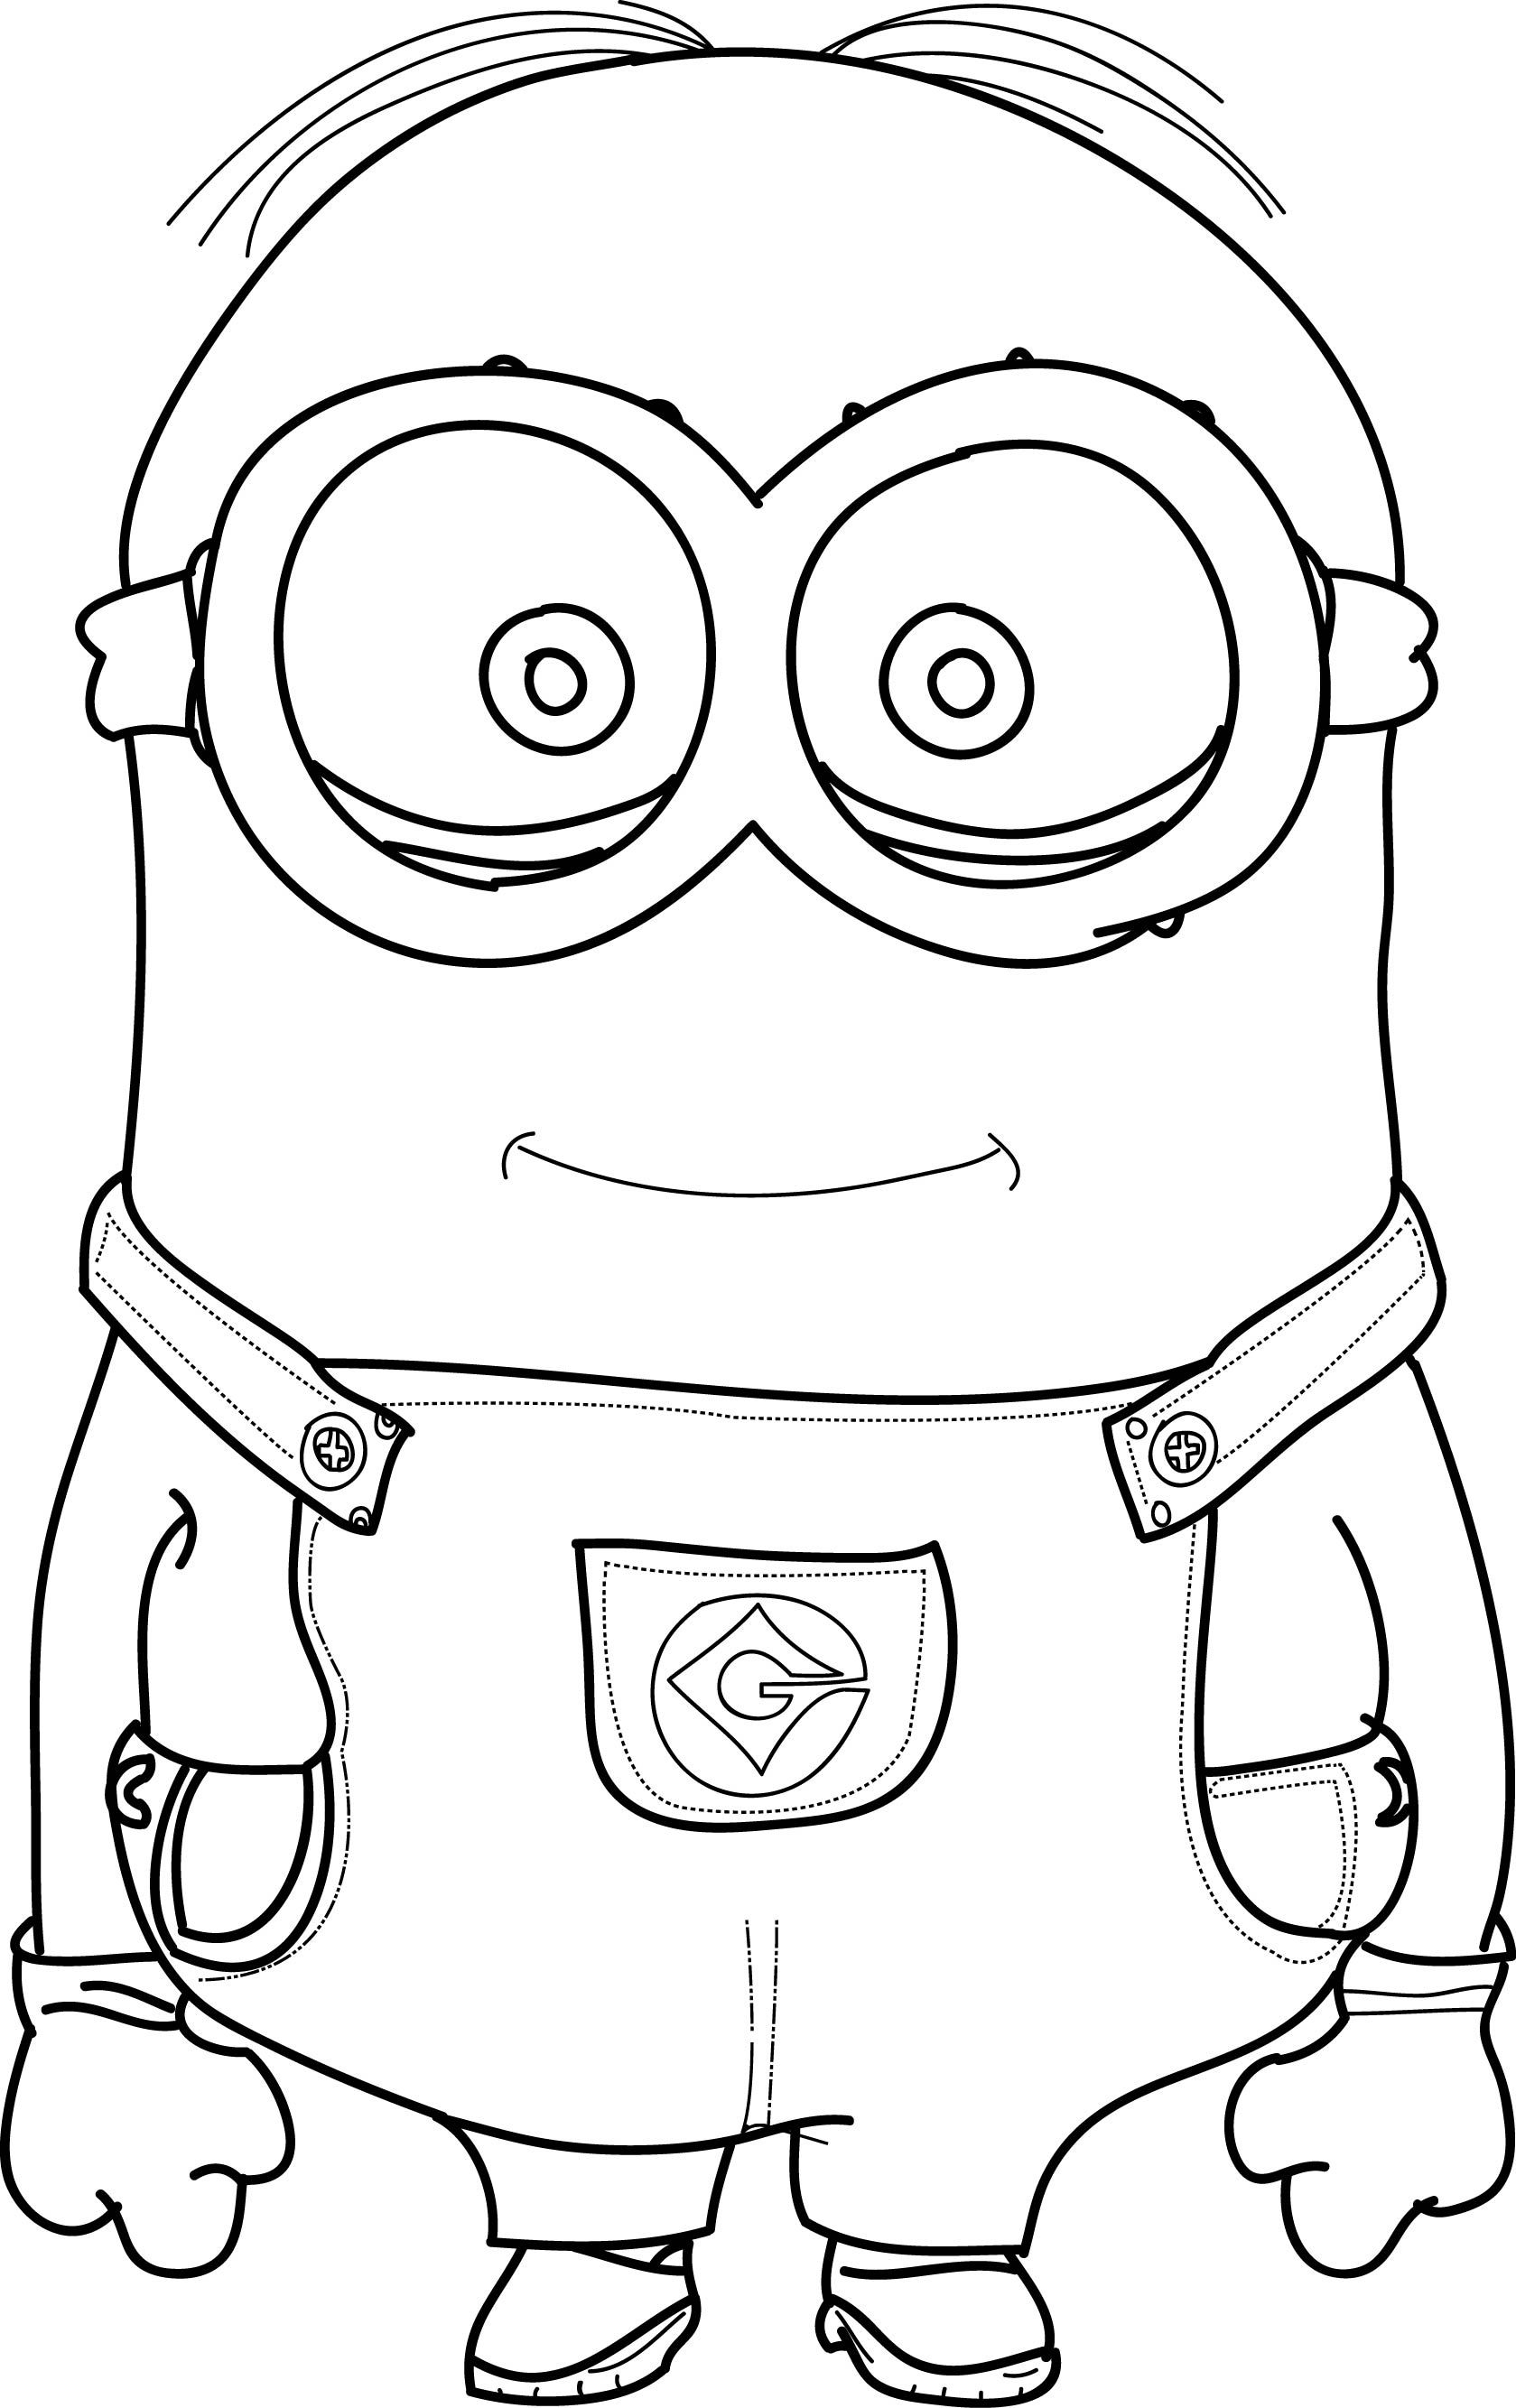 kids cool coloring pages - photo#4